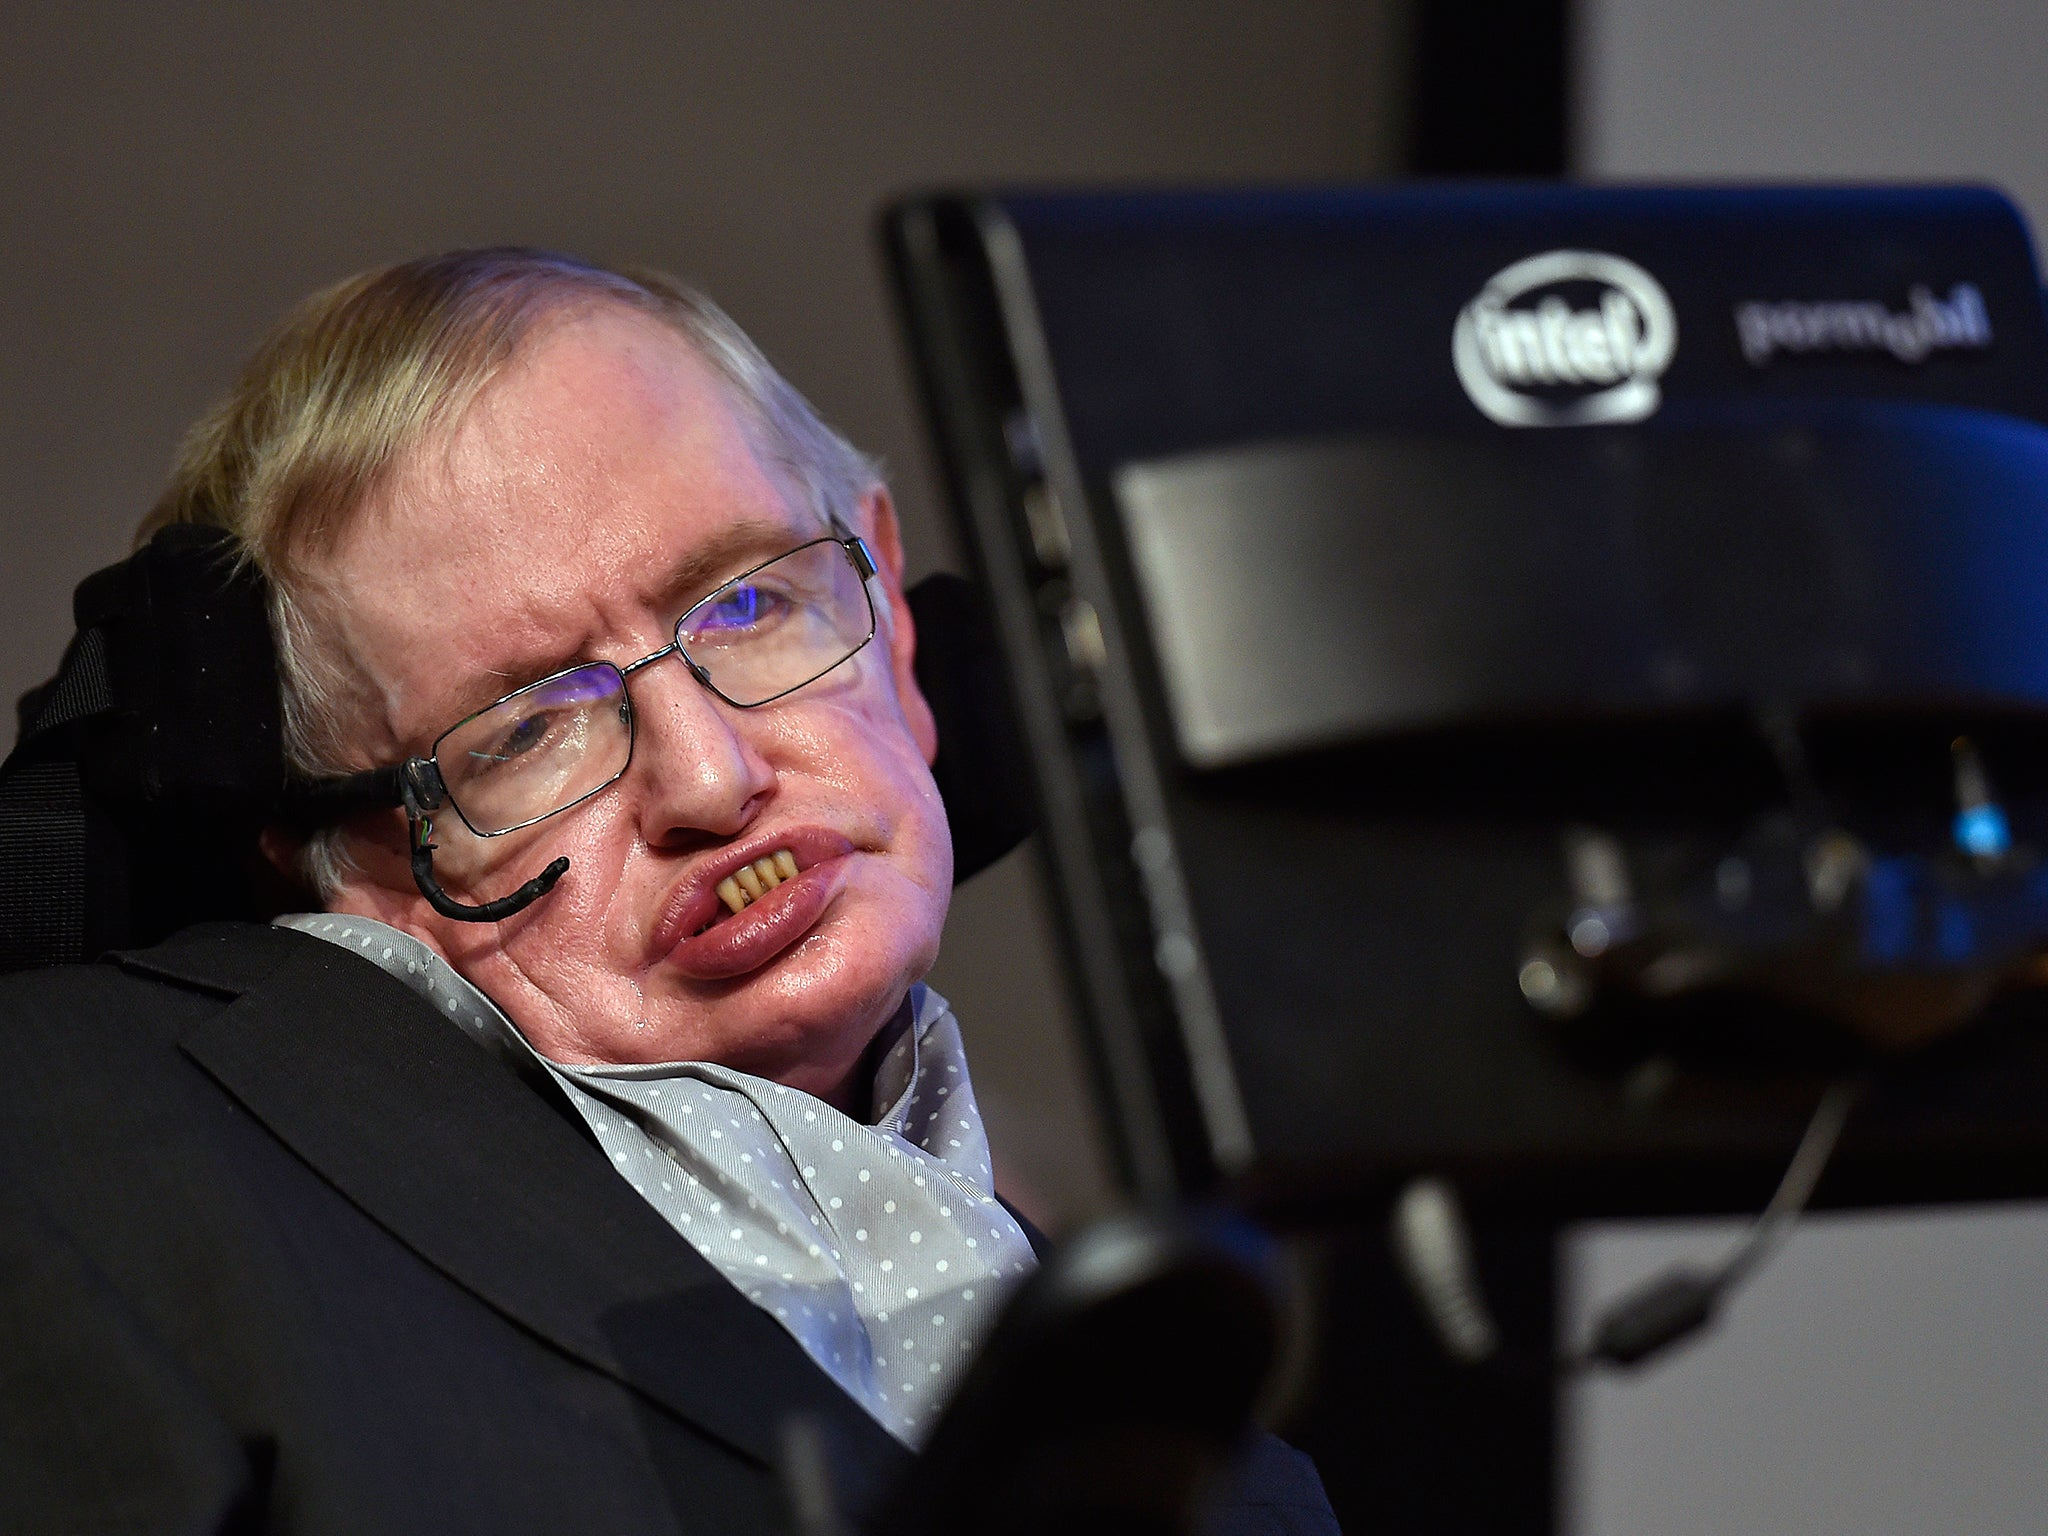 Stephen Hawking accused of sexual harassment